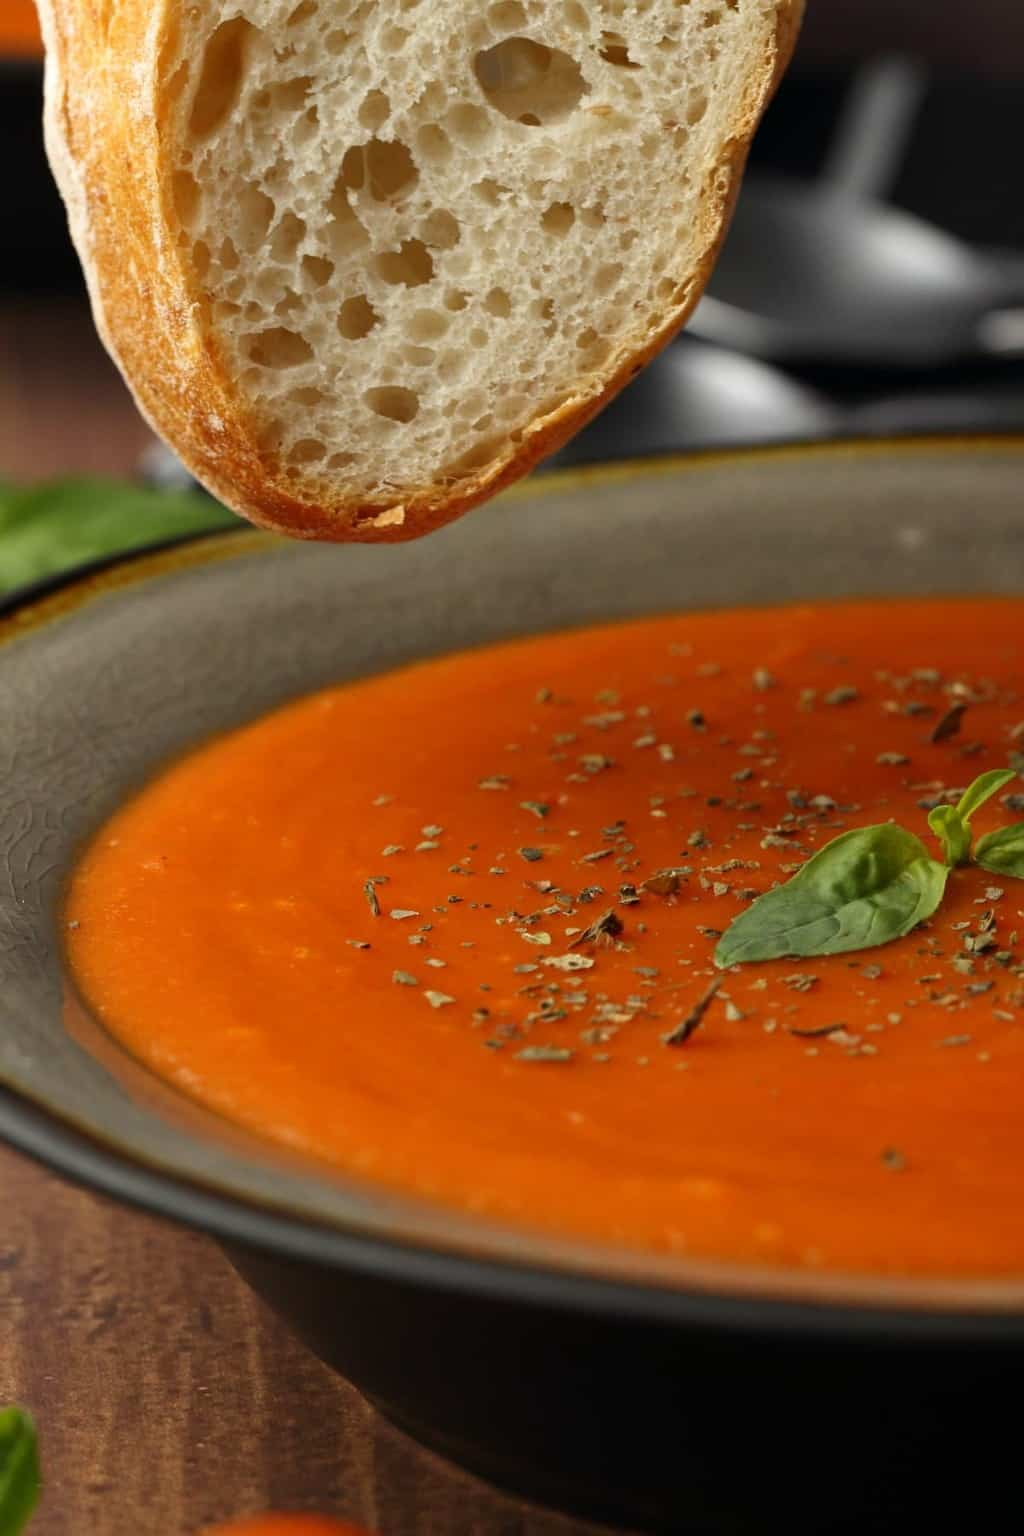 Vegan tomato soup with a slice of bread ready to dip.